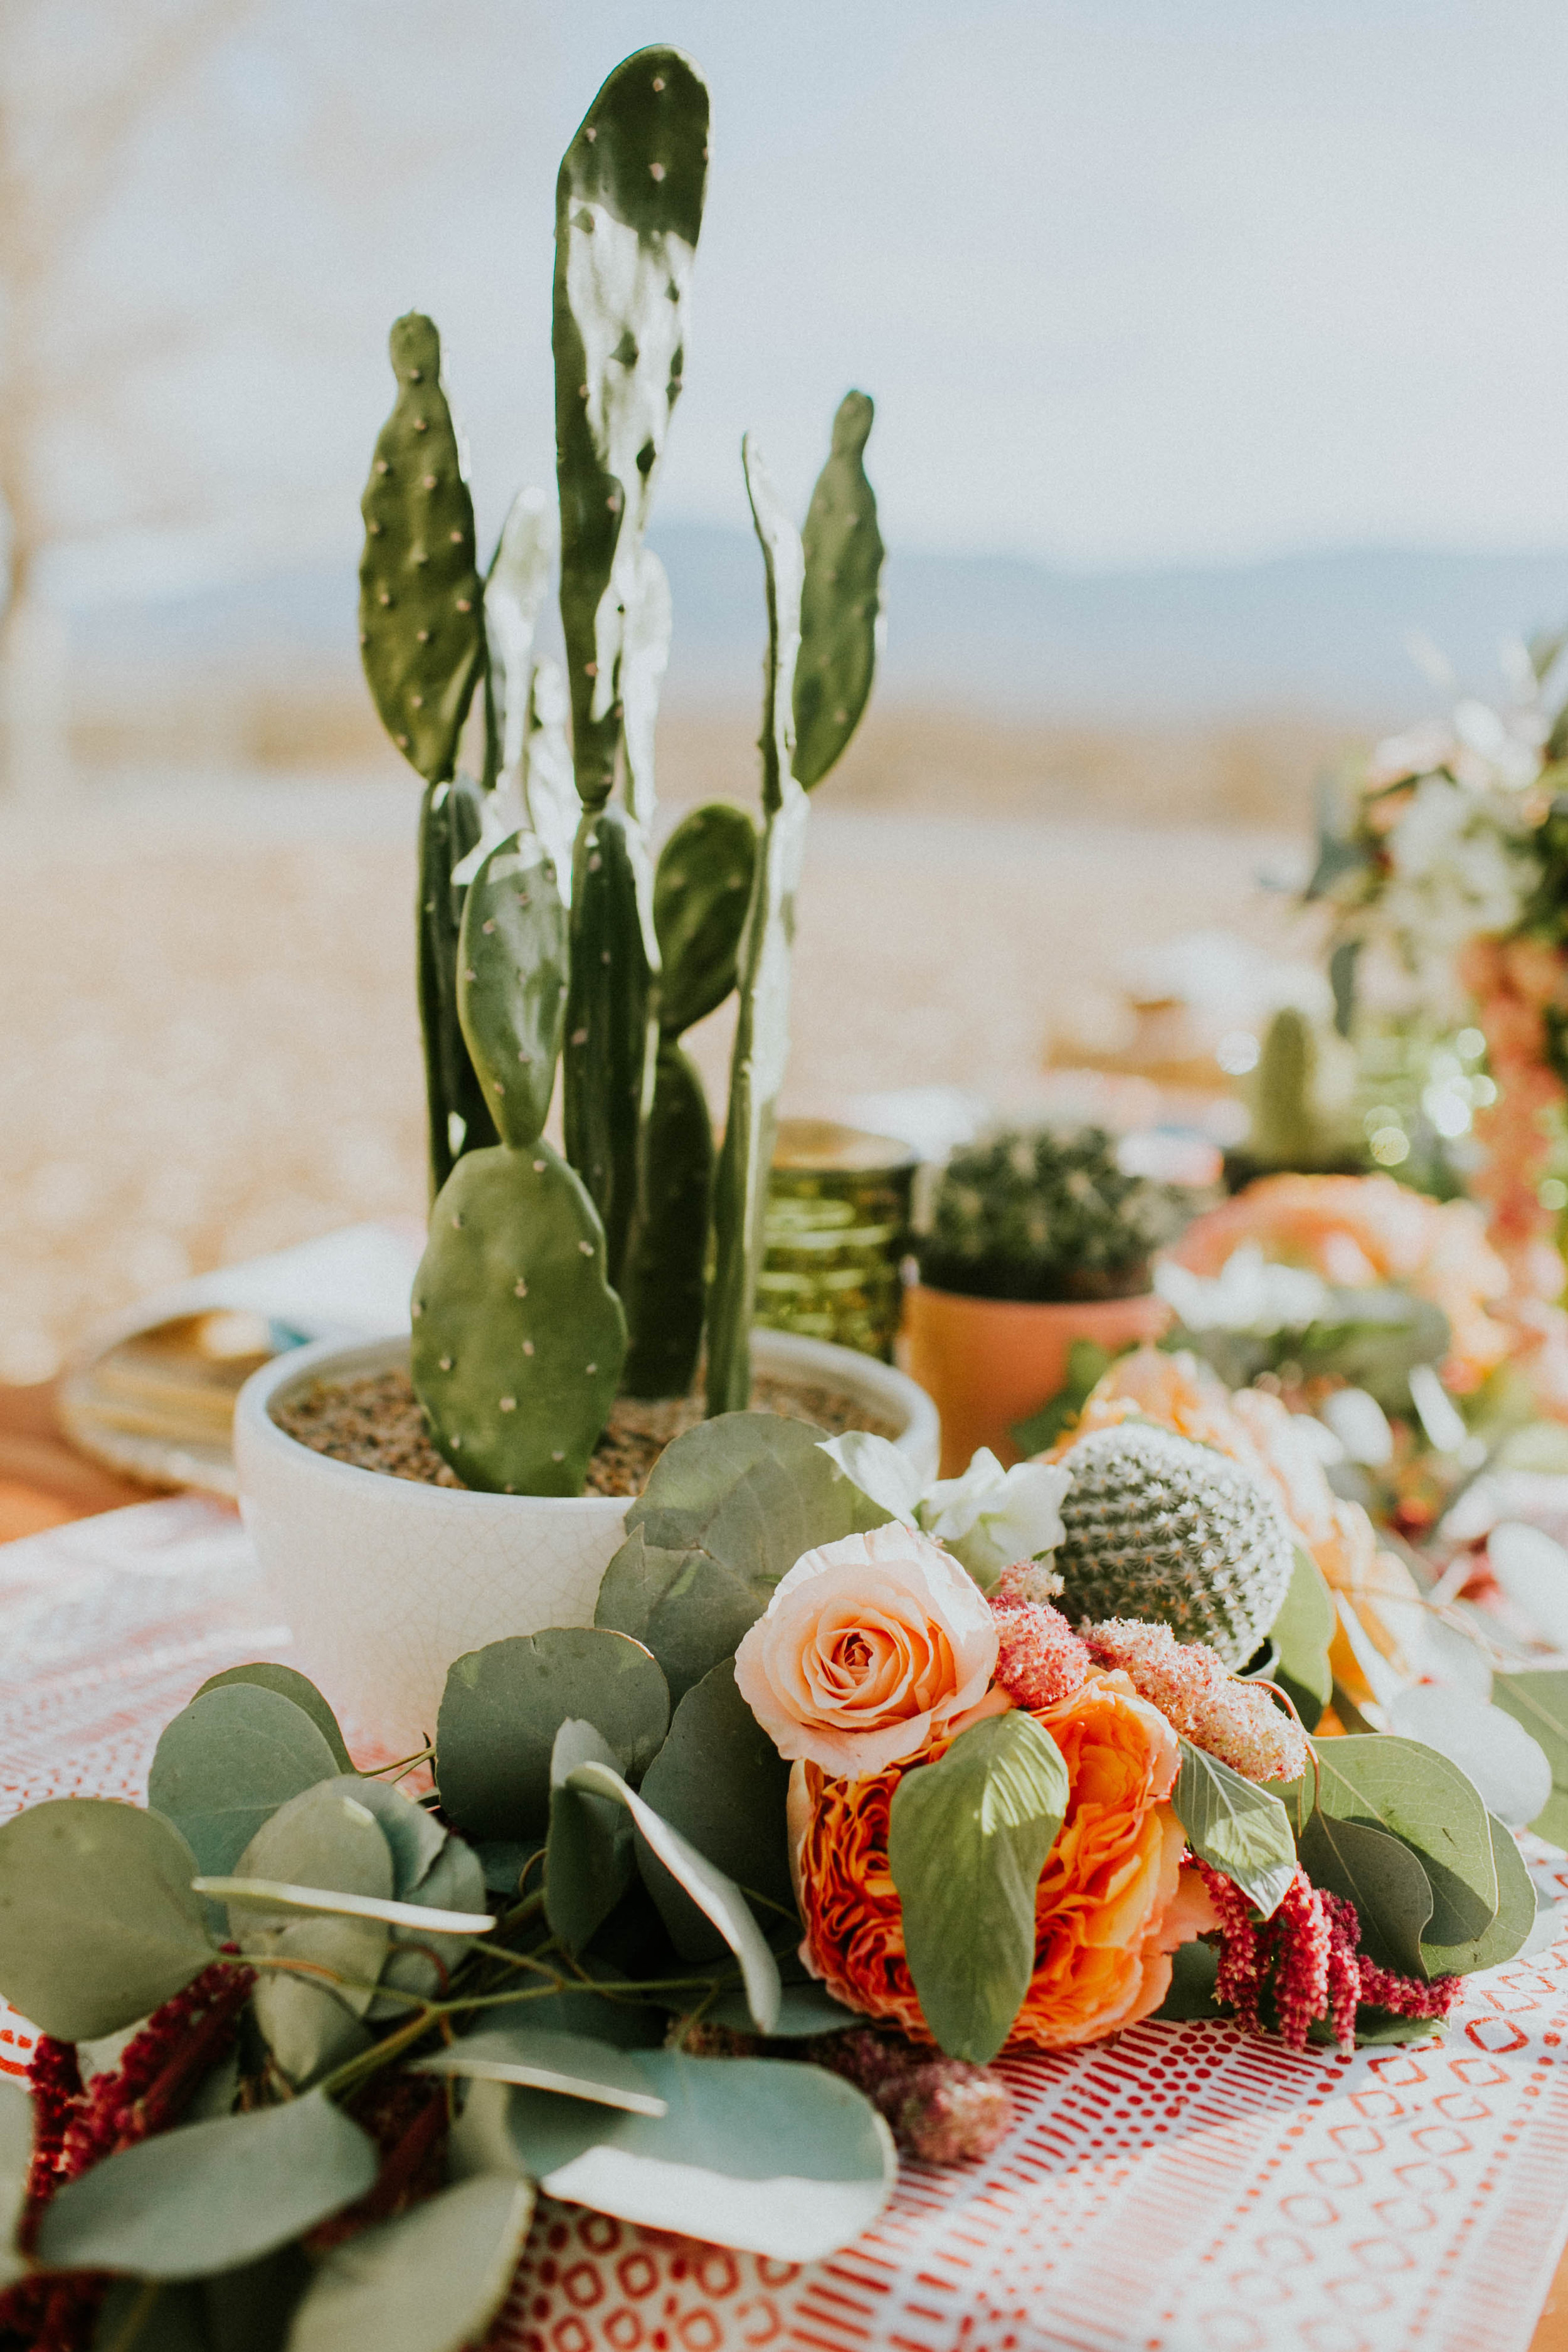 Fruit & Cactus - This shoot was inspired by Natural Fruit Colors, spotlighting the Ruby Red Grape fruit. We also mixed in a Desert Cactus Garden vibe to compliment the Venue located in the Mojave Desert of Southern California.Venue: Flip Flop Ranch - Lucerne Valley CaPhotography: Serina Harvey Photography & Michelle Bongirno PhotographyBridal Dress: Smitten Bridal - Hesperia CaFlorals: Kristin Smith Floral ConceptsHMUA: Lizeth Carillo - Bella MiaModels: Aaron and Laura Staggs, Nancy ValtierraSee more from this shoot:Michelle Bongirno's Photo Blog